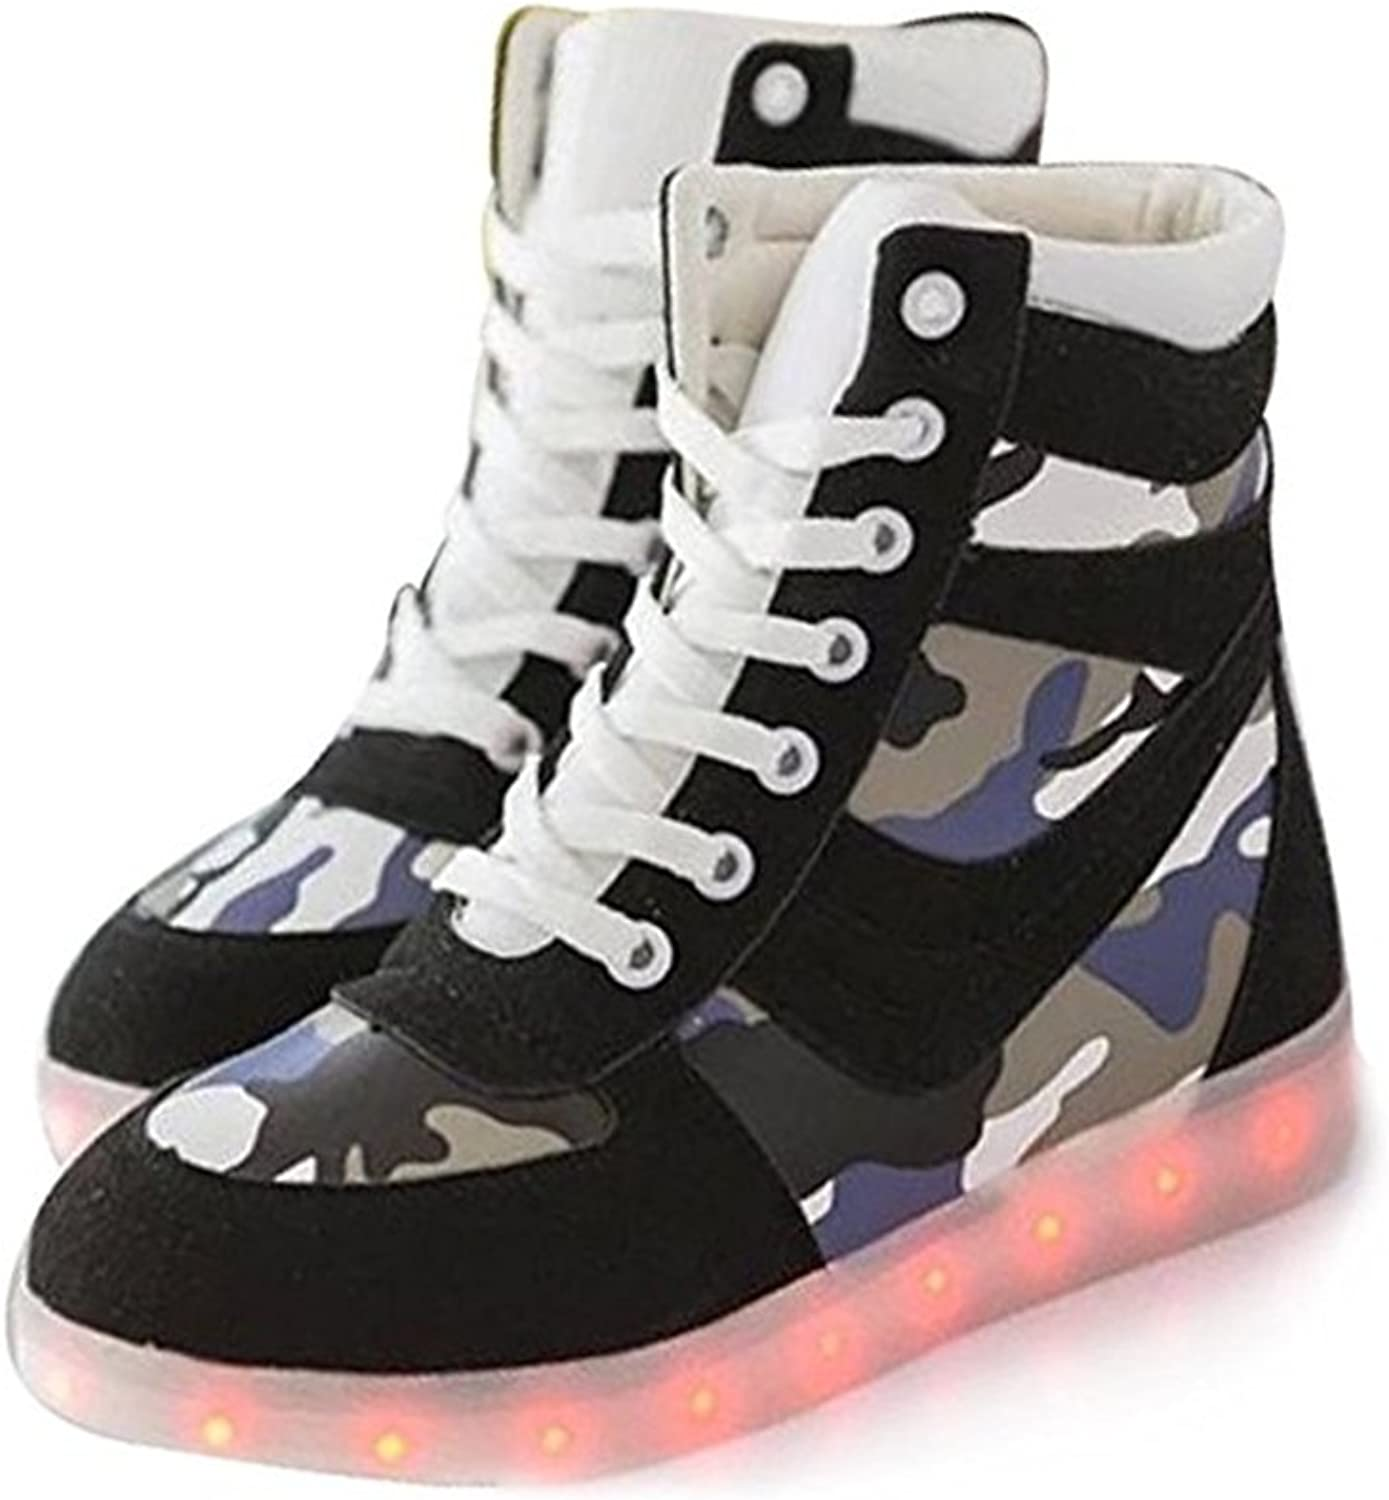 Southed High Top LED shoes Light Up USB Charging Boots Flashing Sneakers for Men Women